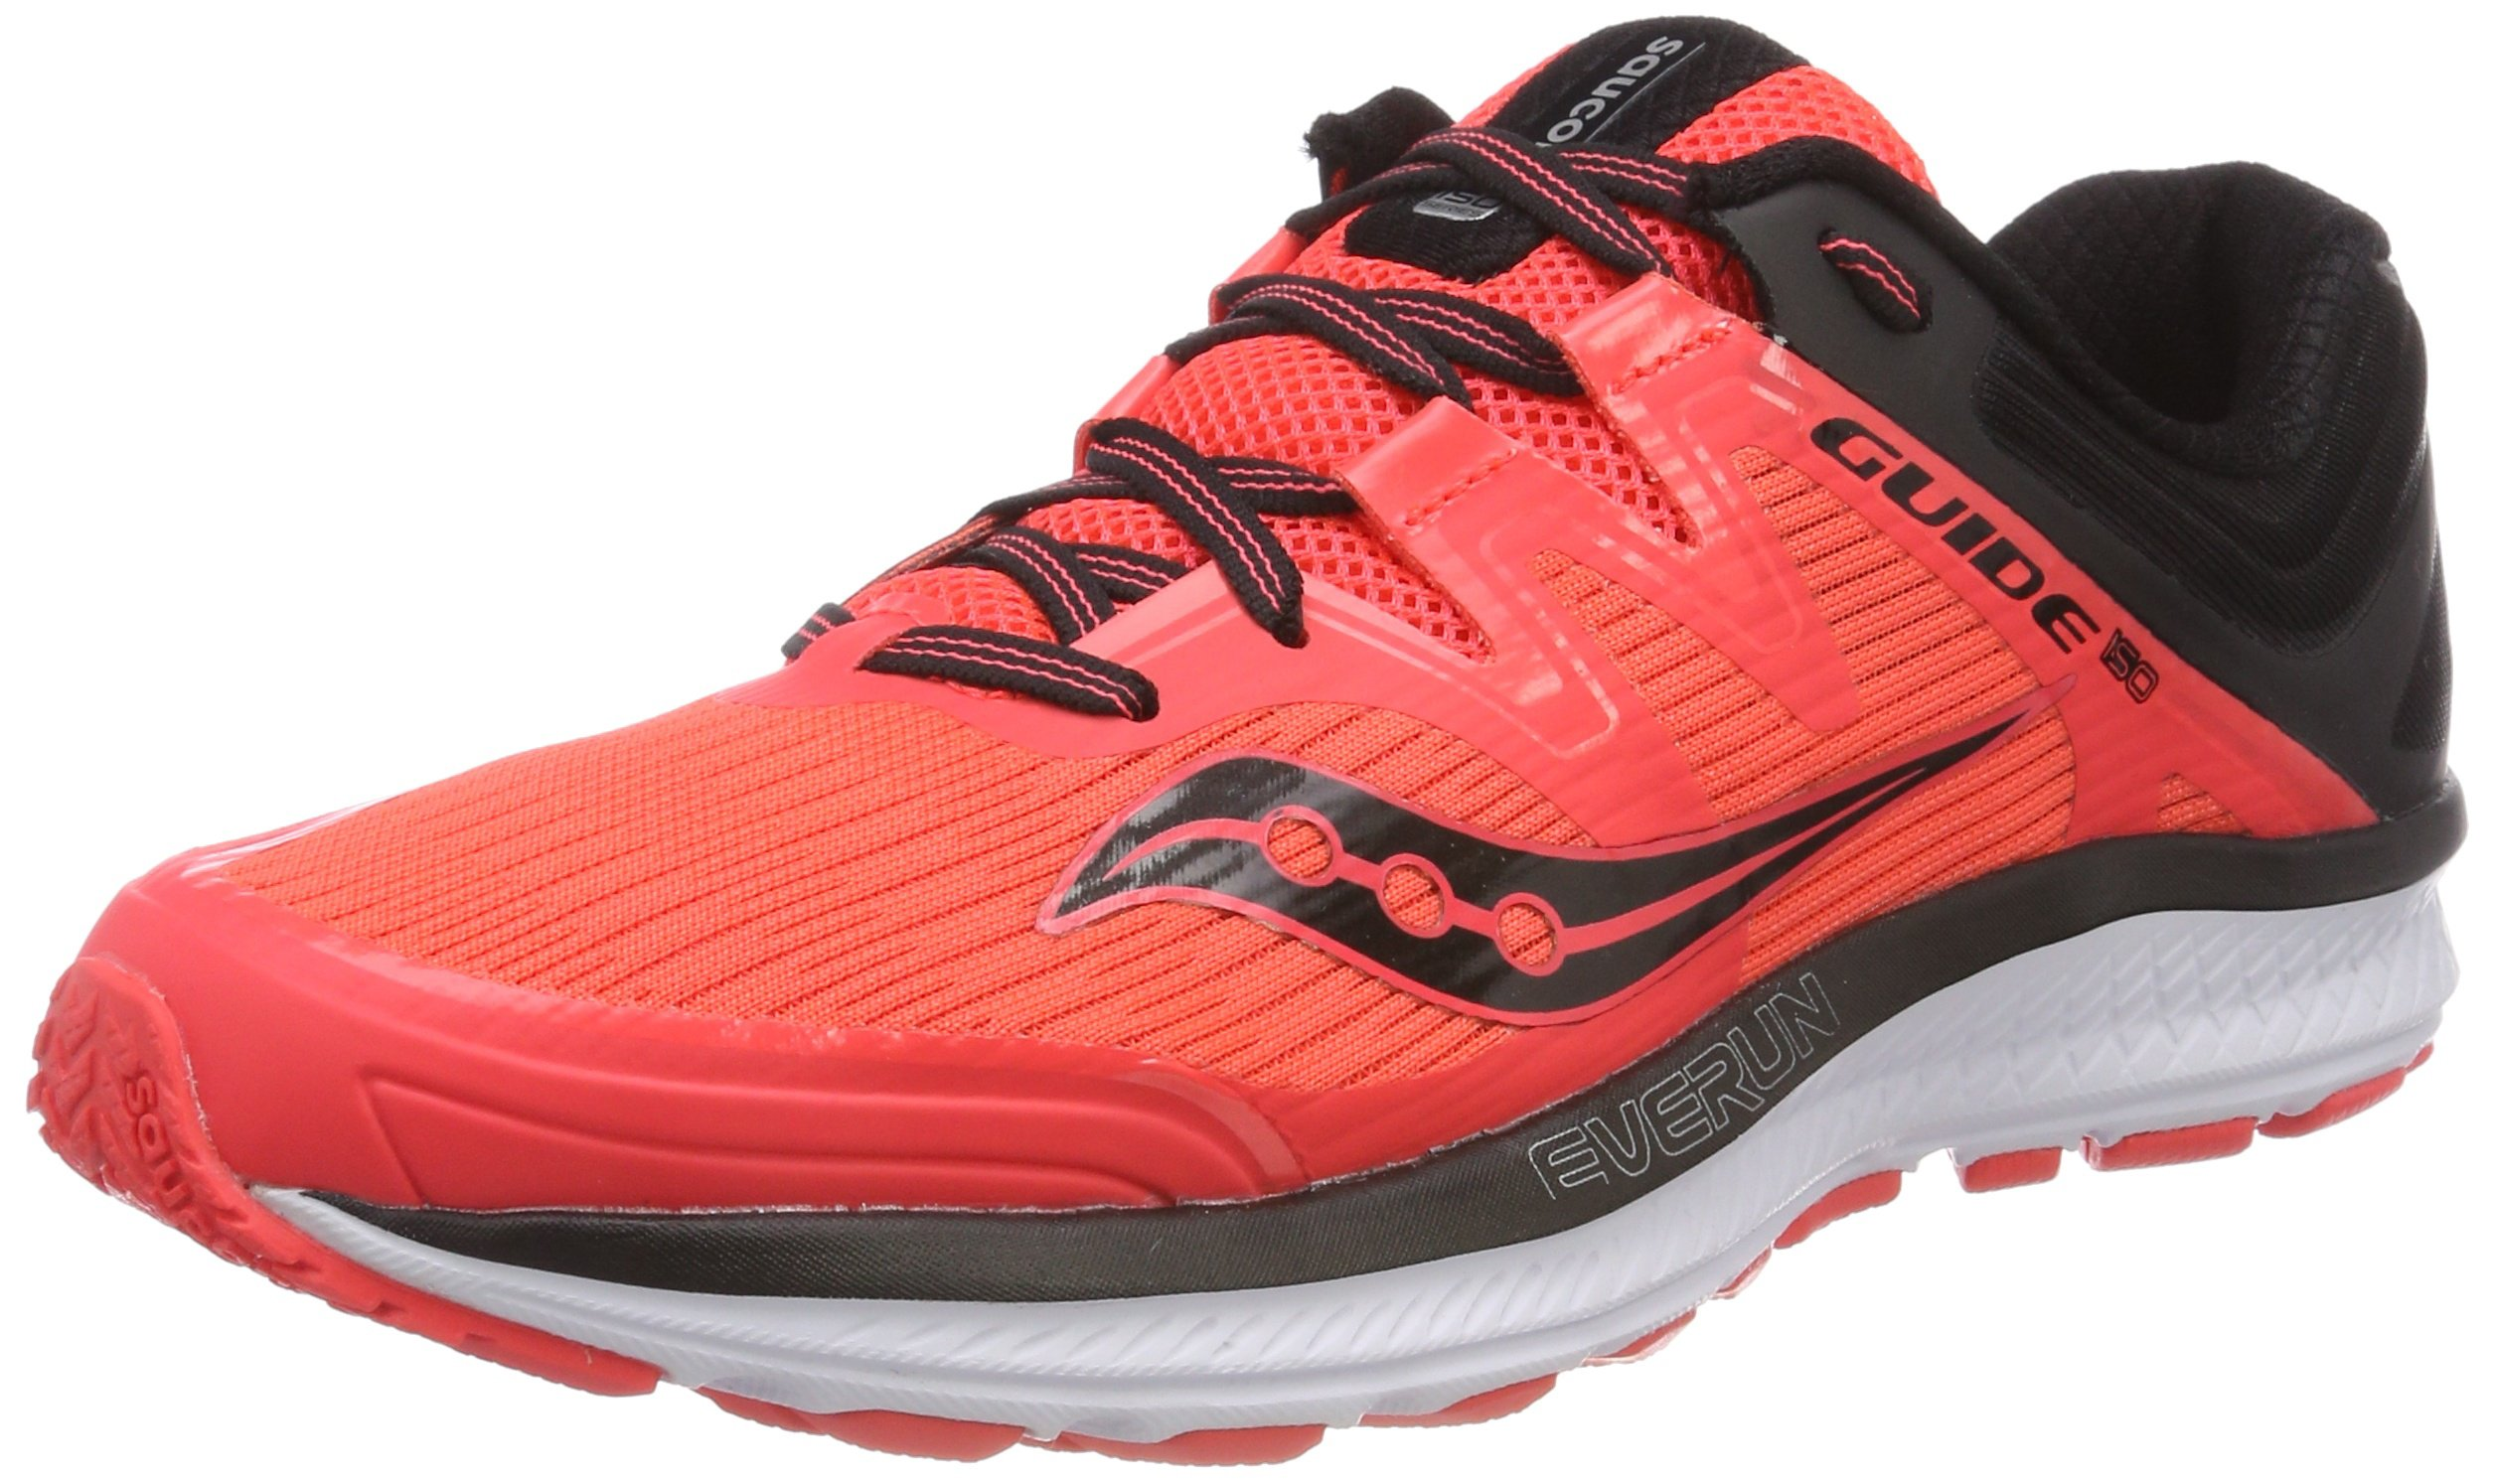 81SEgeLrhfL - Saucony Women's Guide Iso Competition Running Shoes